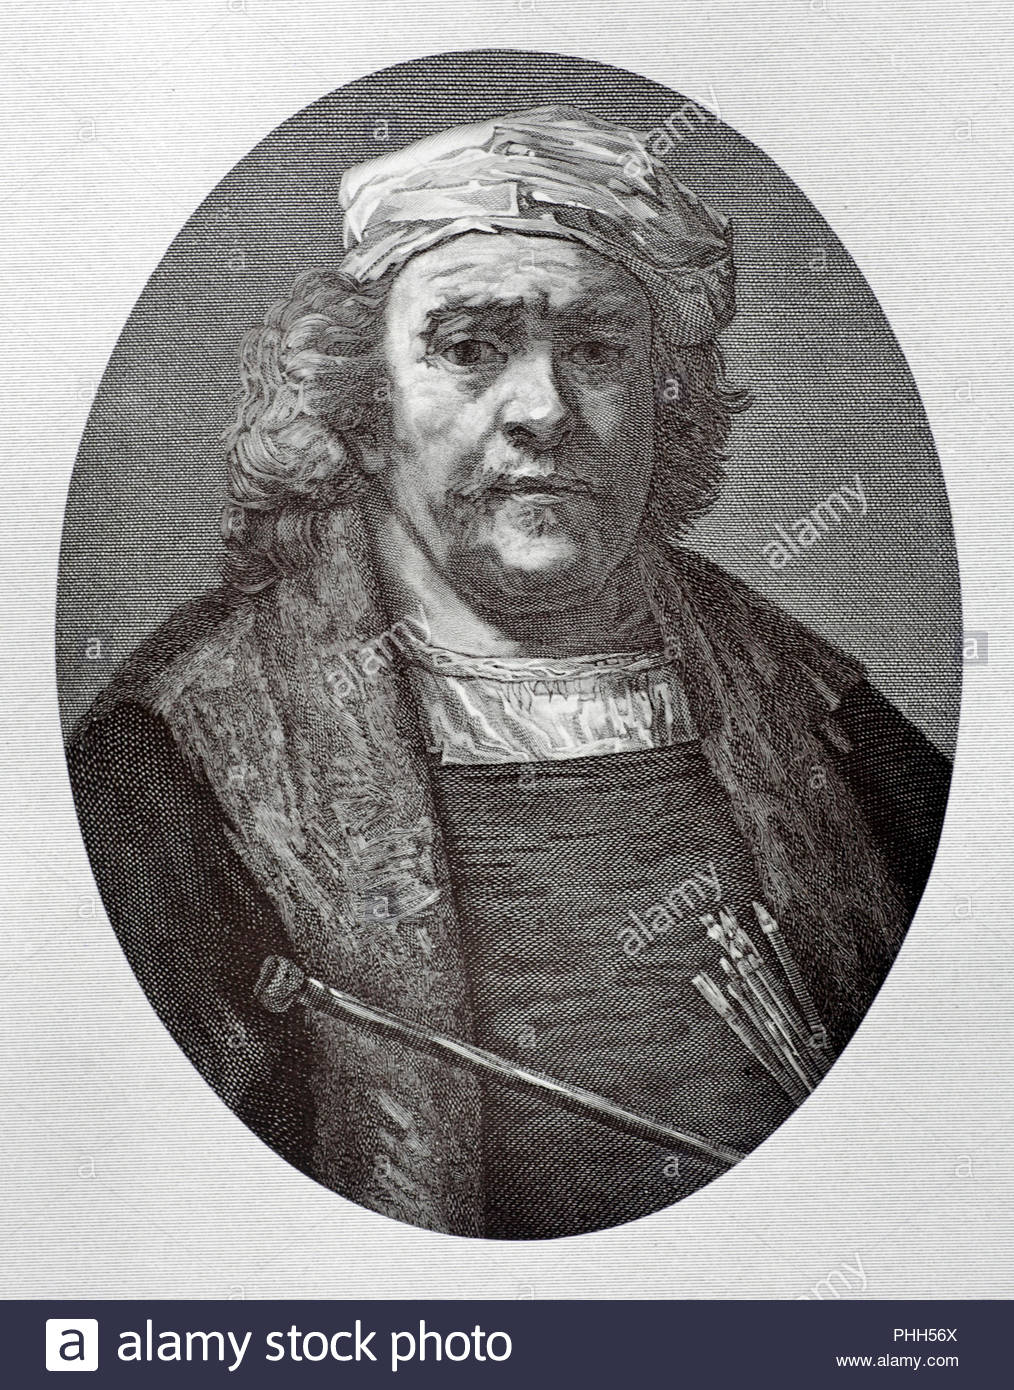 Rembrandt Harmenszoon van Rijn in old age, 1606 – 1669 was a Dutch draughtsman, painter and printmaker, antique illustration from 1880 - Stock Image